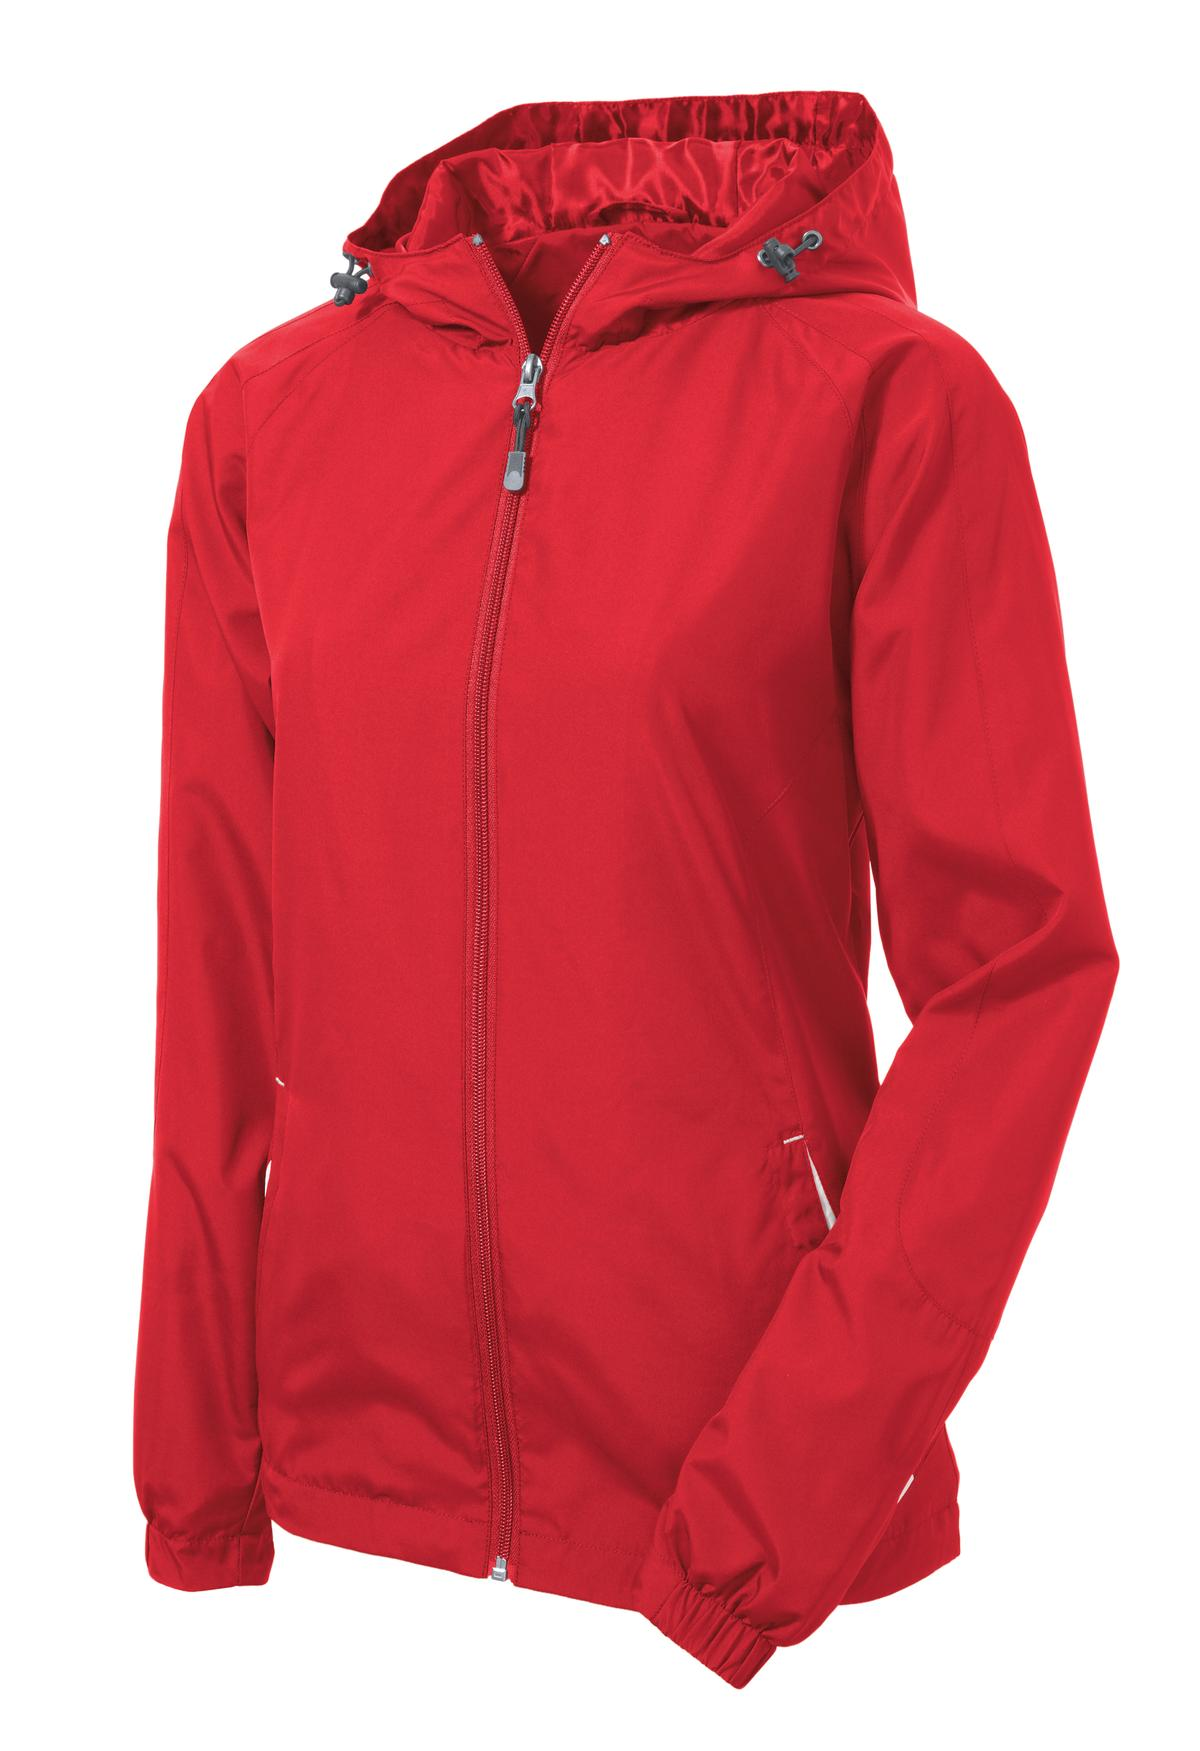 Mafoose Women's Colorblock Hooded Raglan Jacket True Red/White-Front